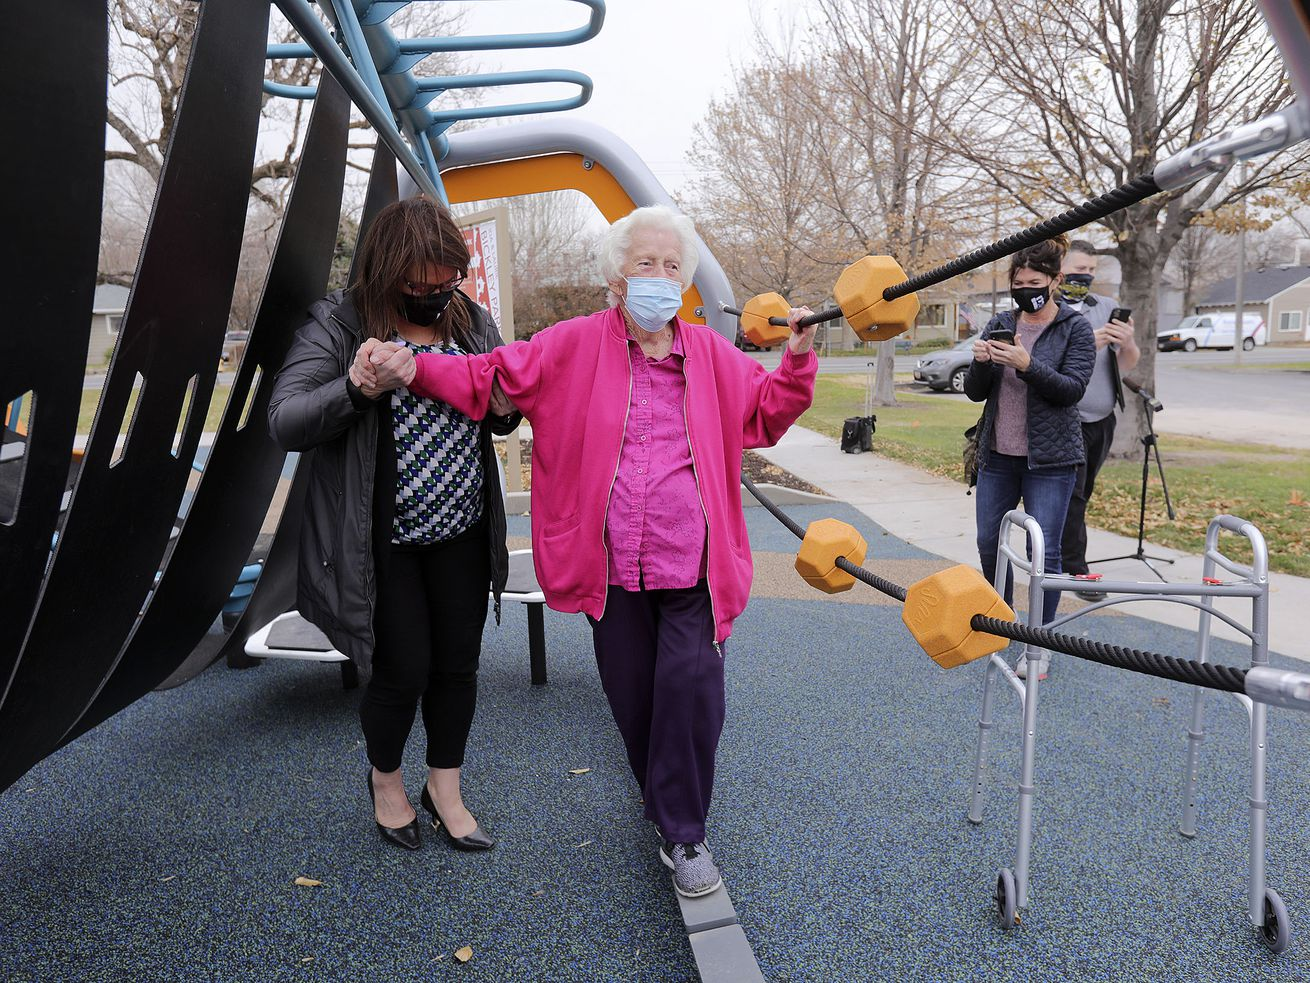 South Salt Lake Mayor Sherie Wood helps Ida Brickley,  94, balance and walk on a suspended bridge on a Hedra Playground structure at the Ida and Laurie Brickley Park adjacent to the Columbus Center in South Salt Lake on Wednesday, Nov. 18, 2020. Construction of the all abilities park was just completed and was named in honor of Ida and her daughter, Laurie, who have been volunteering at the Columbus Center Library three days a week for 13 years. The playground equipment is designed for all ages and accommodate those with physical, sensory and intellectual disabilities.